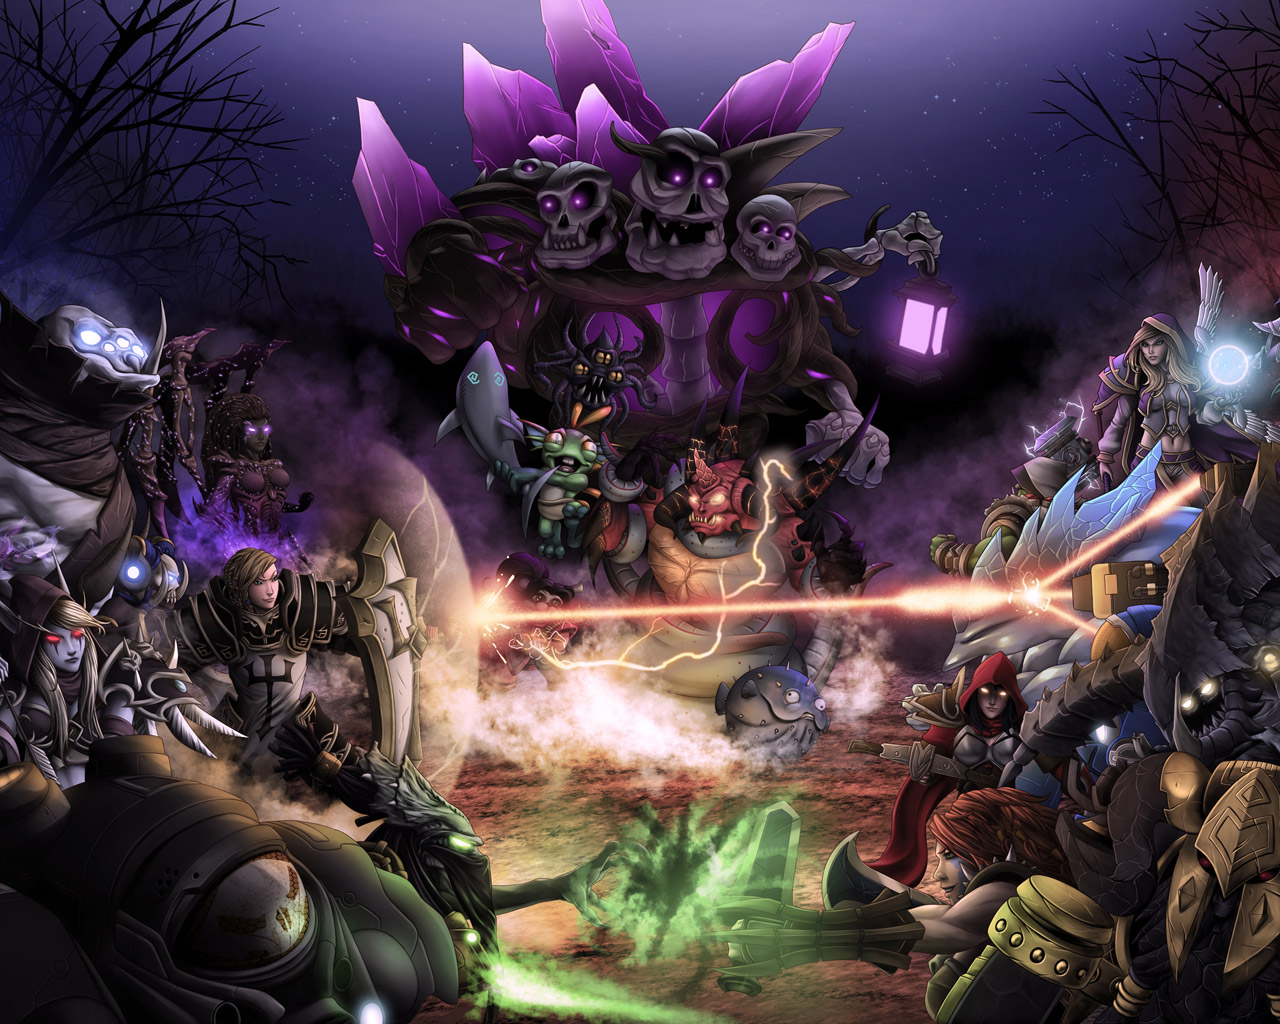 Free Heroes of the Storm Wallpaper in 1280x1024